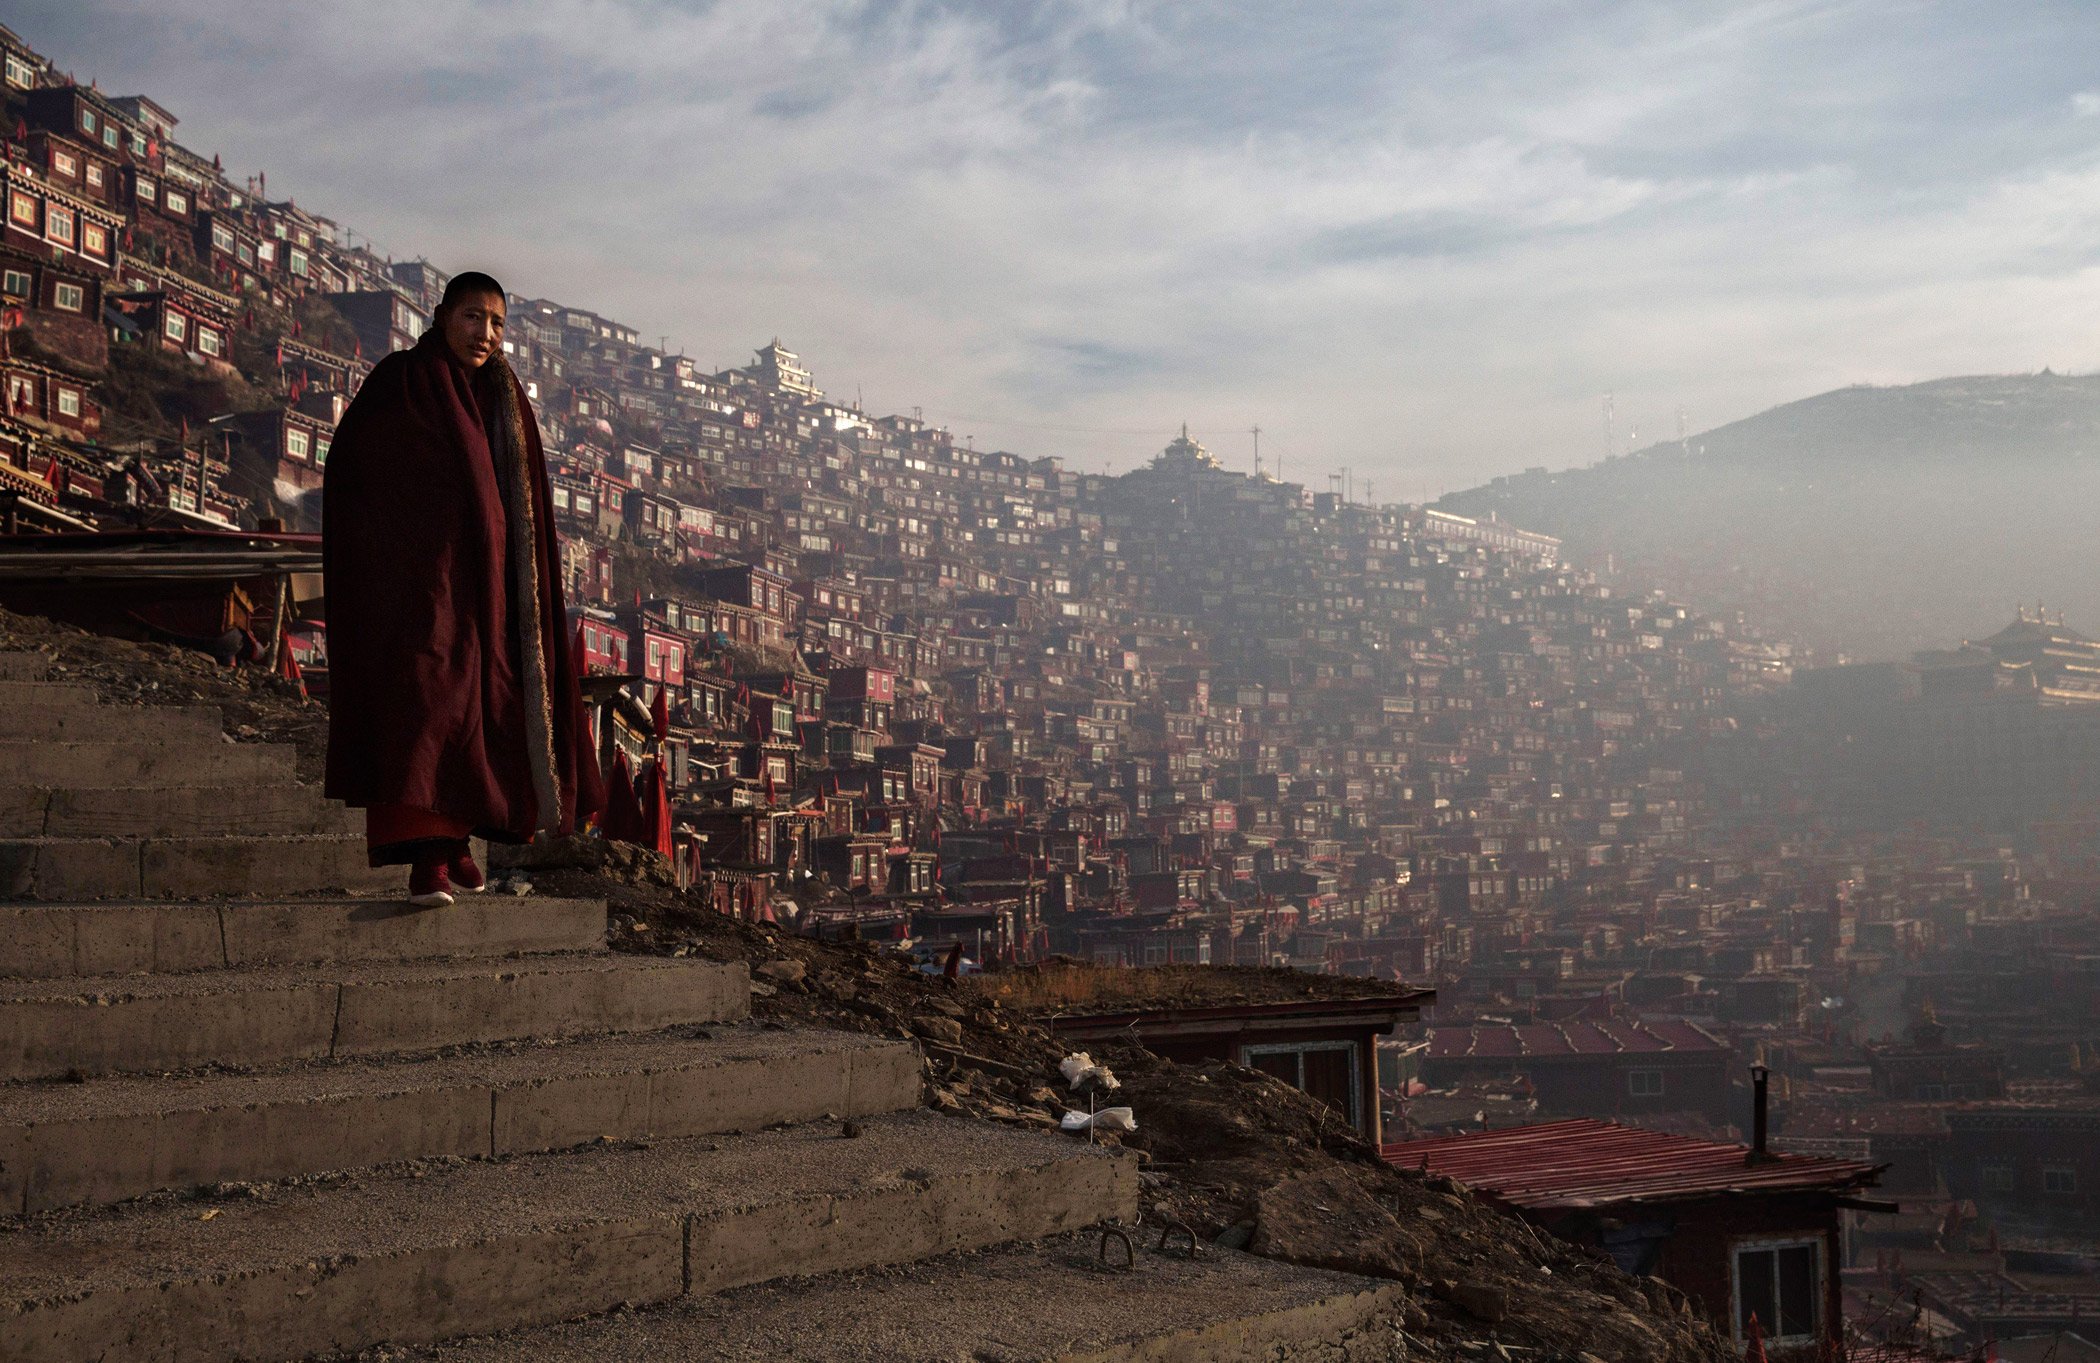 A Tibetan Buddhist nun walks past dwellings on her way to a chanting session.